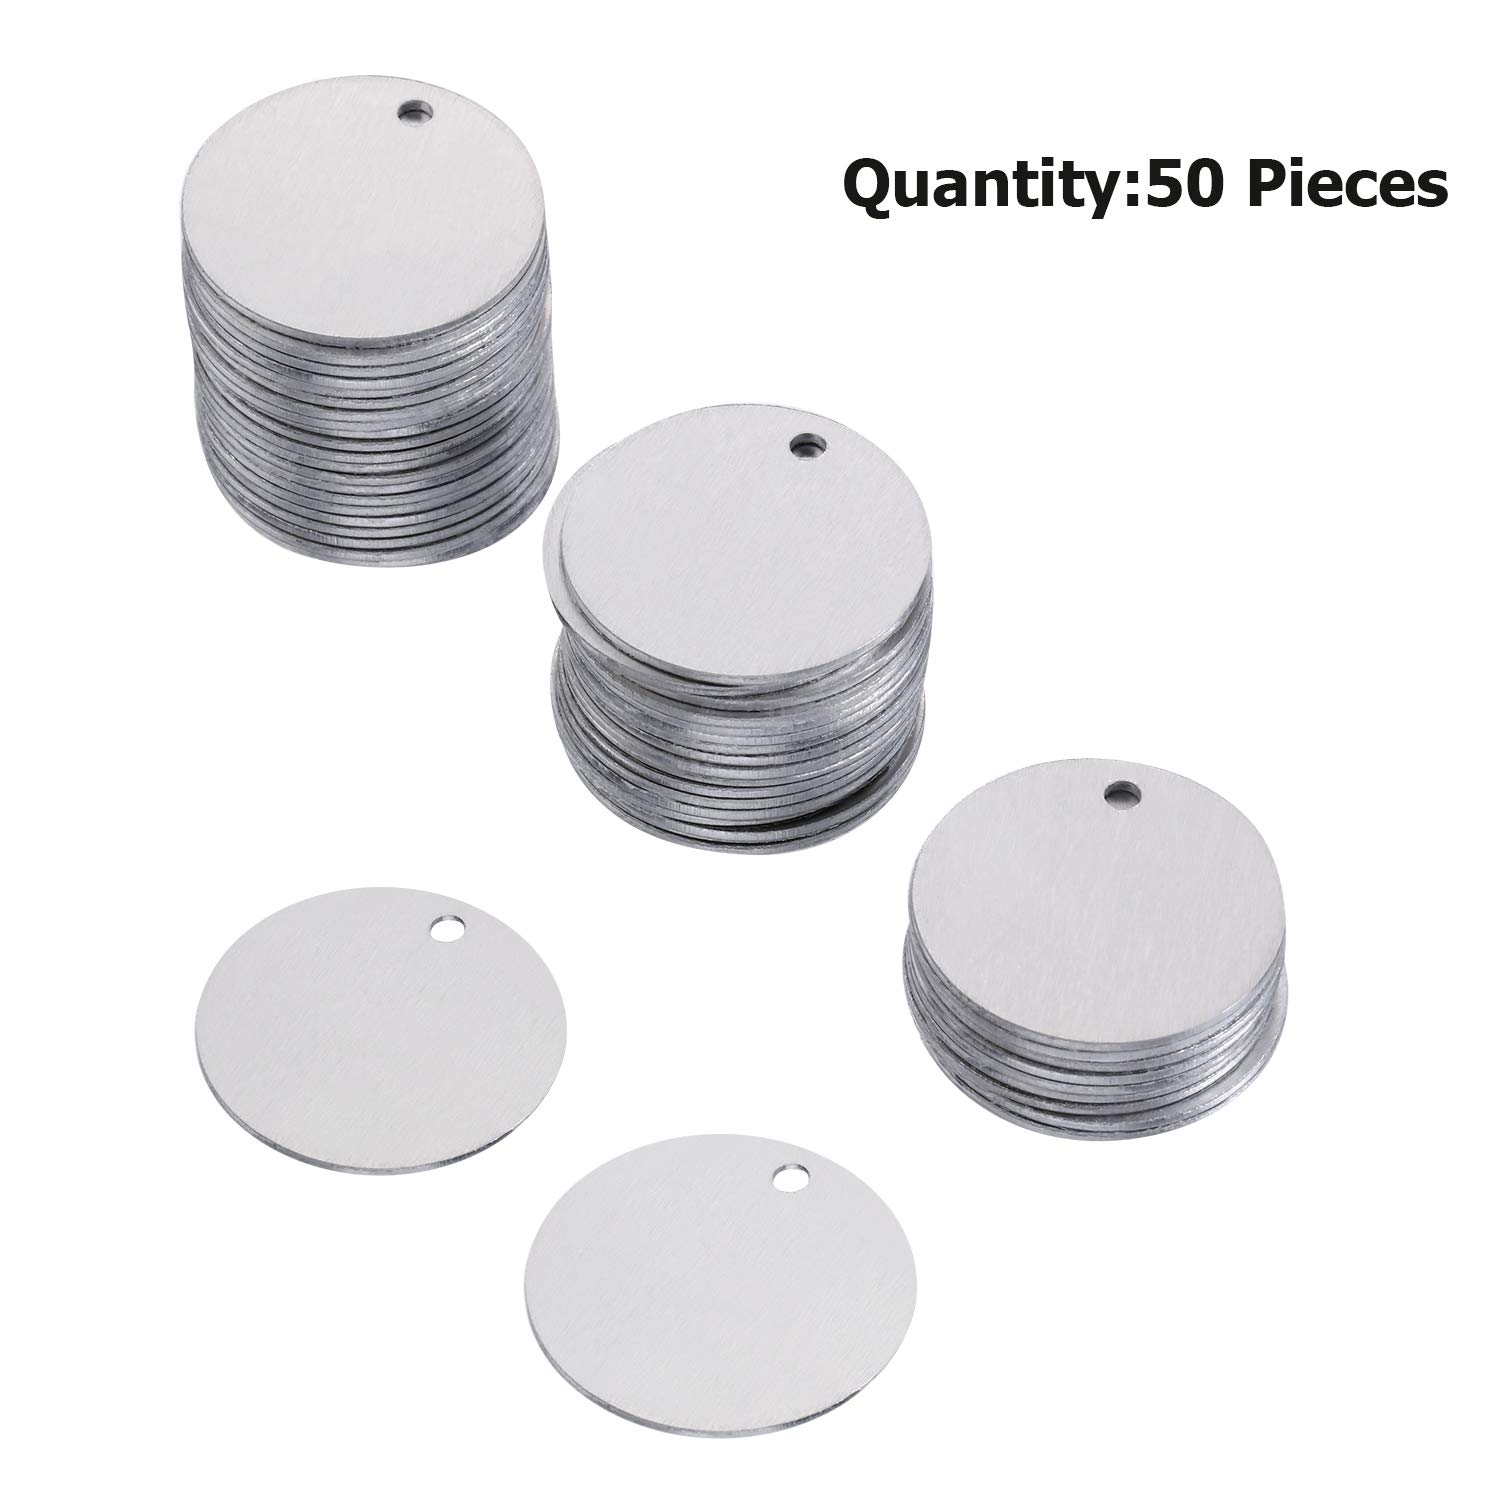 SATINIOR 50 Pieces Stamping Blank Tags 1 Inch Round with Hole Aluminum Blanks Tags